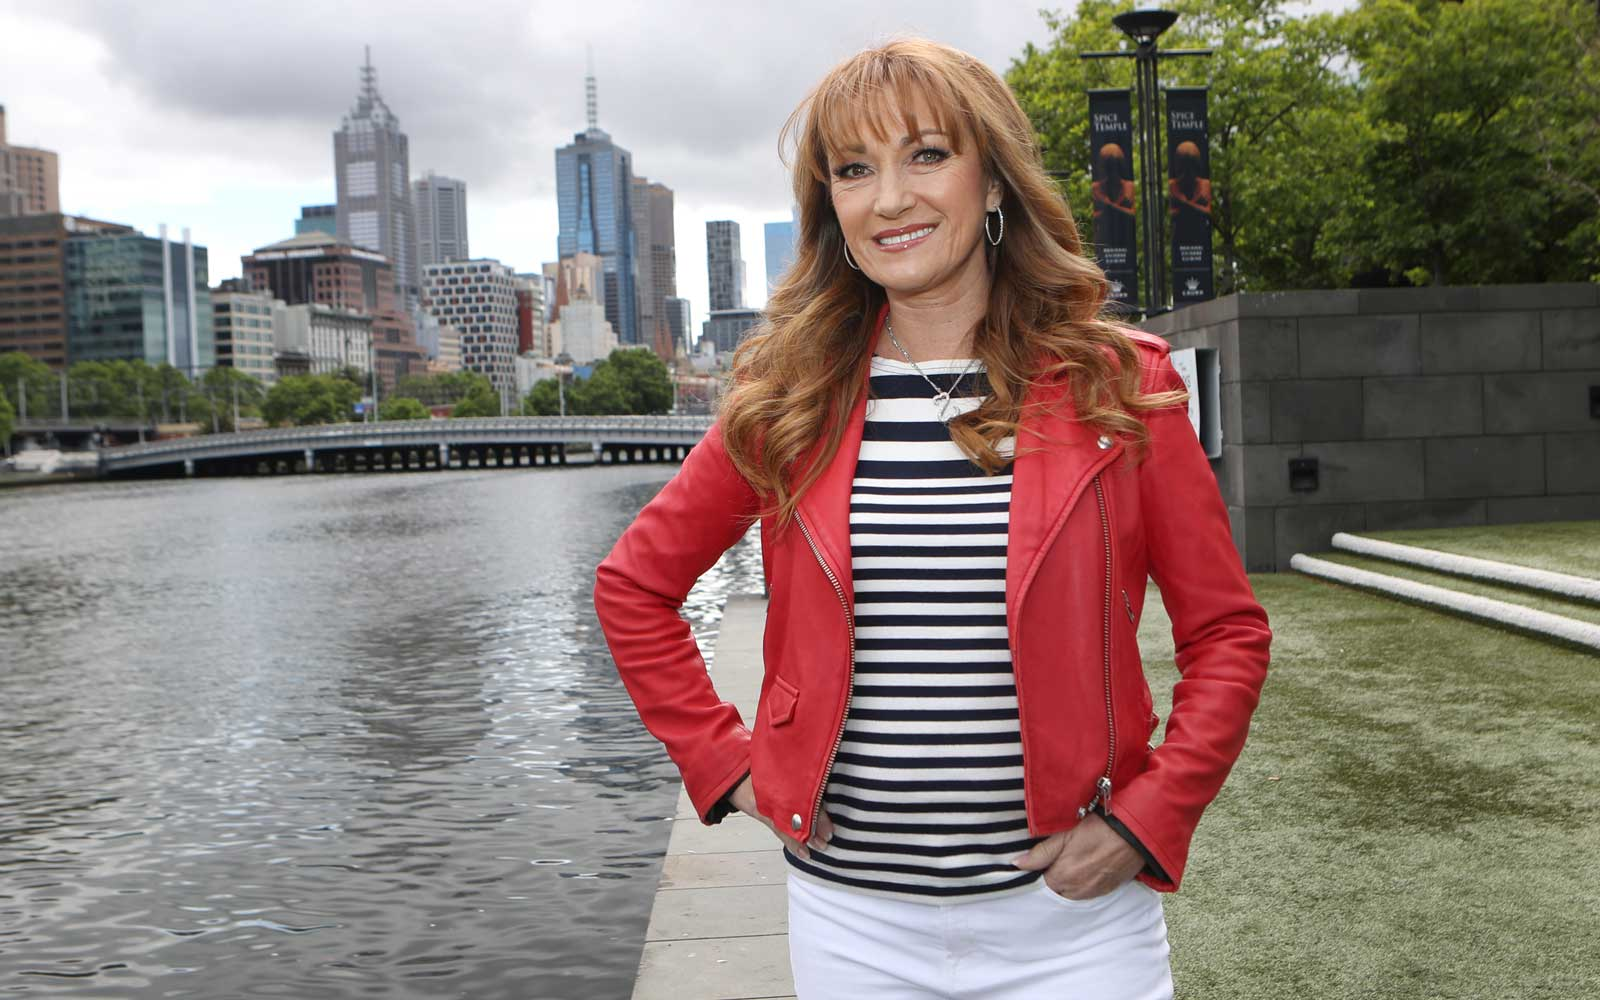 Actress Jane Seymour poses during a photo shoot in Melbourne, Victoria, Australia, Nov 2017